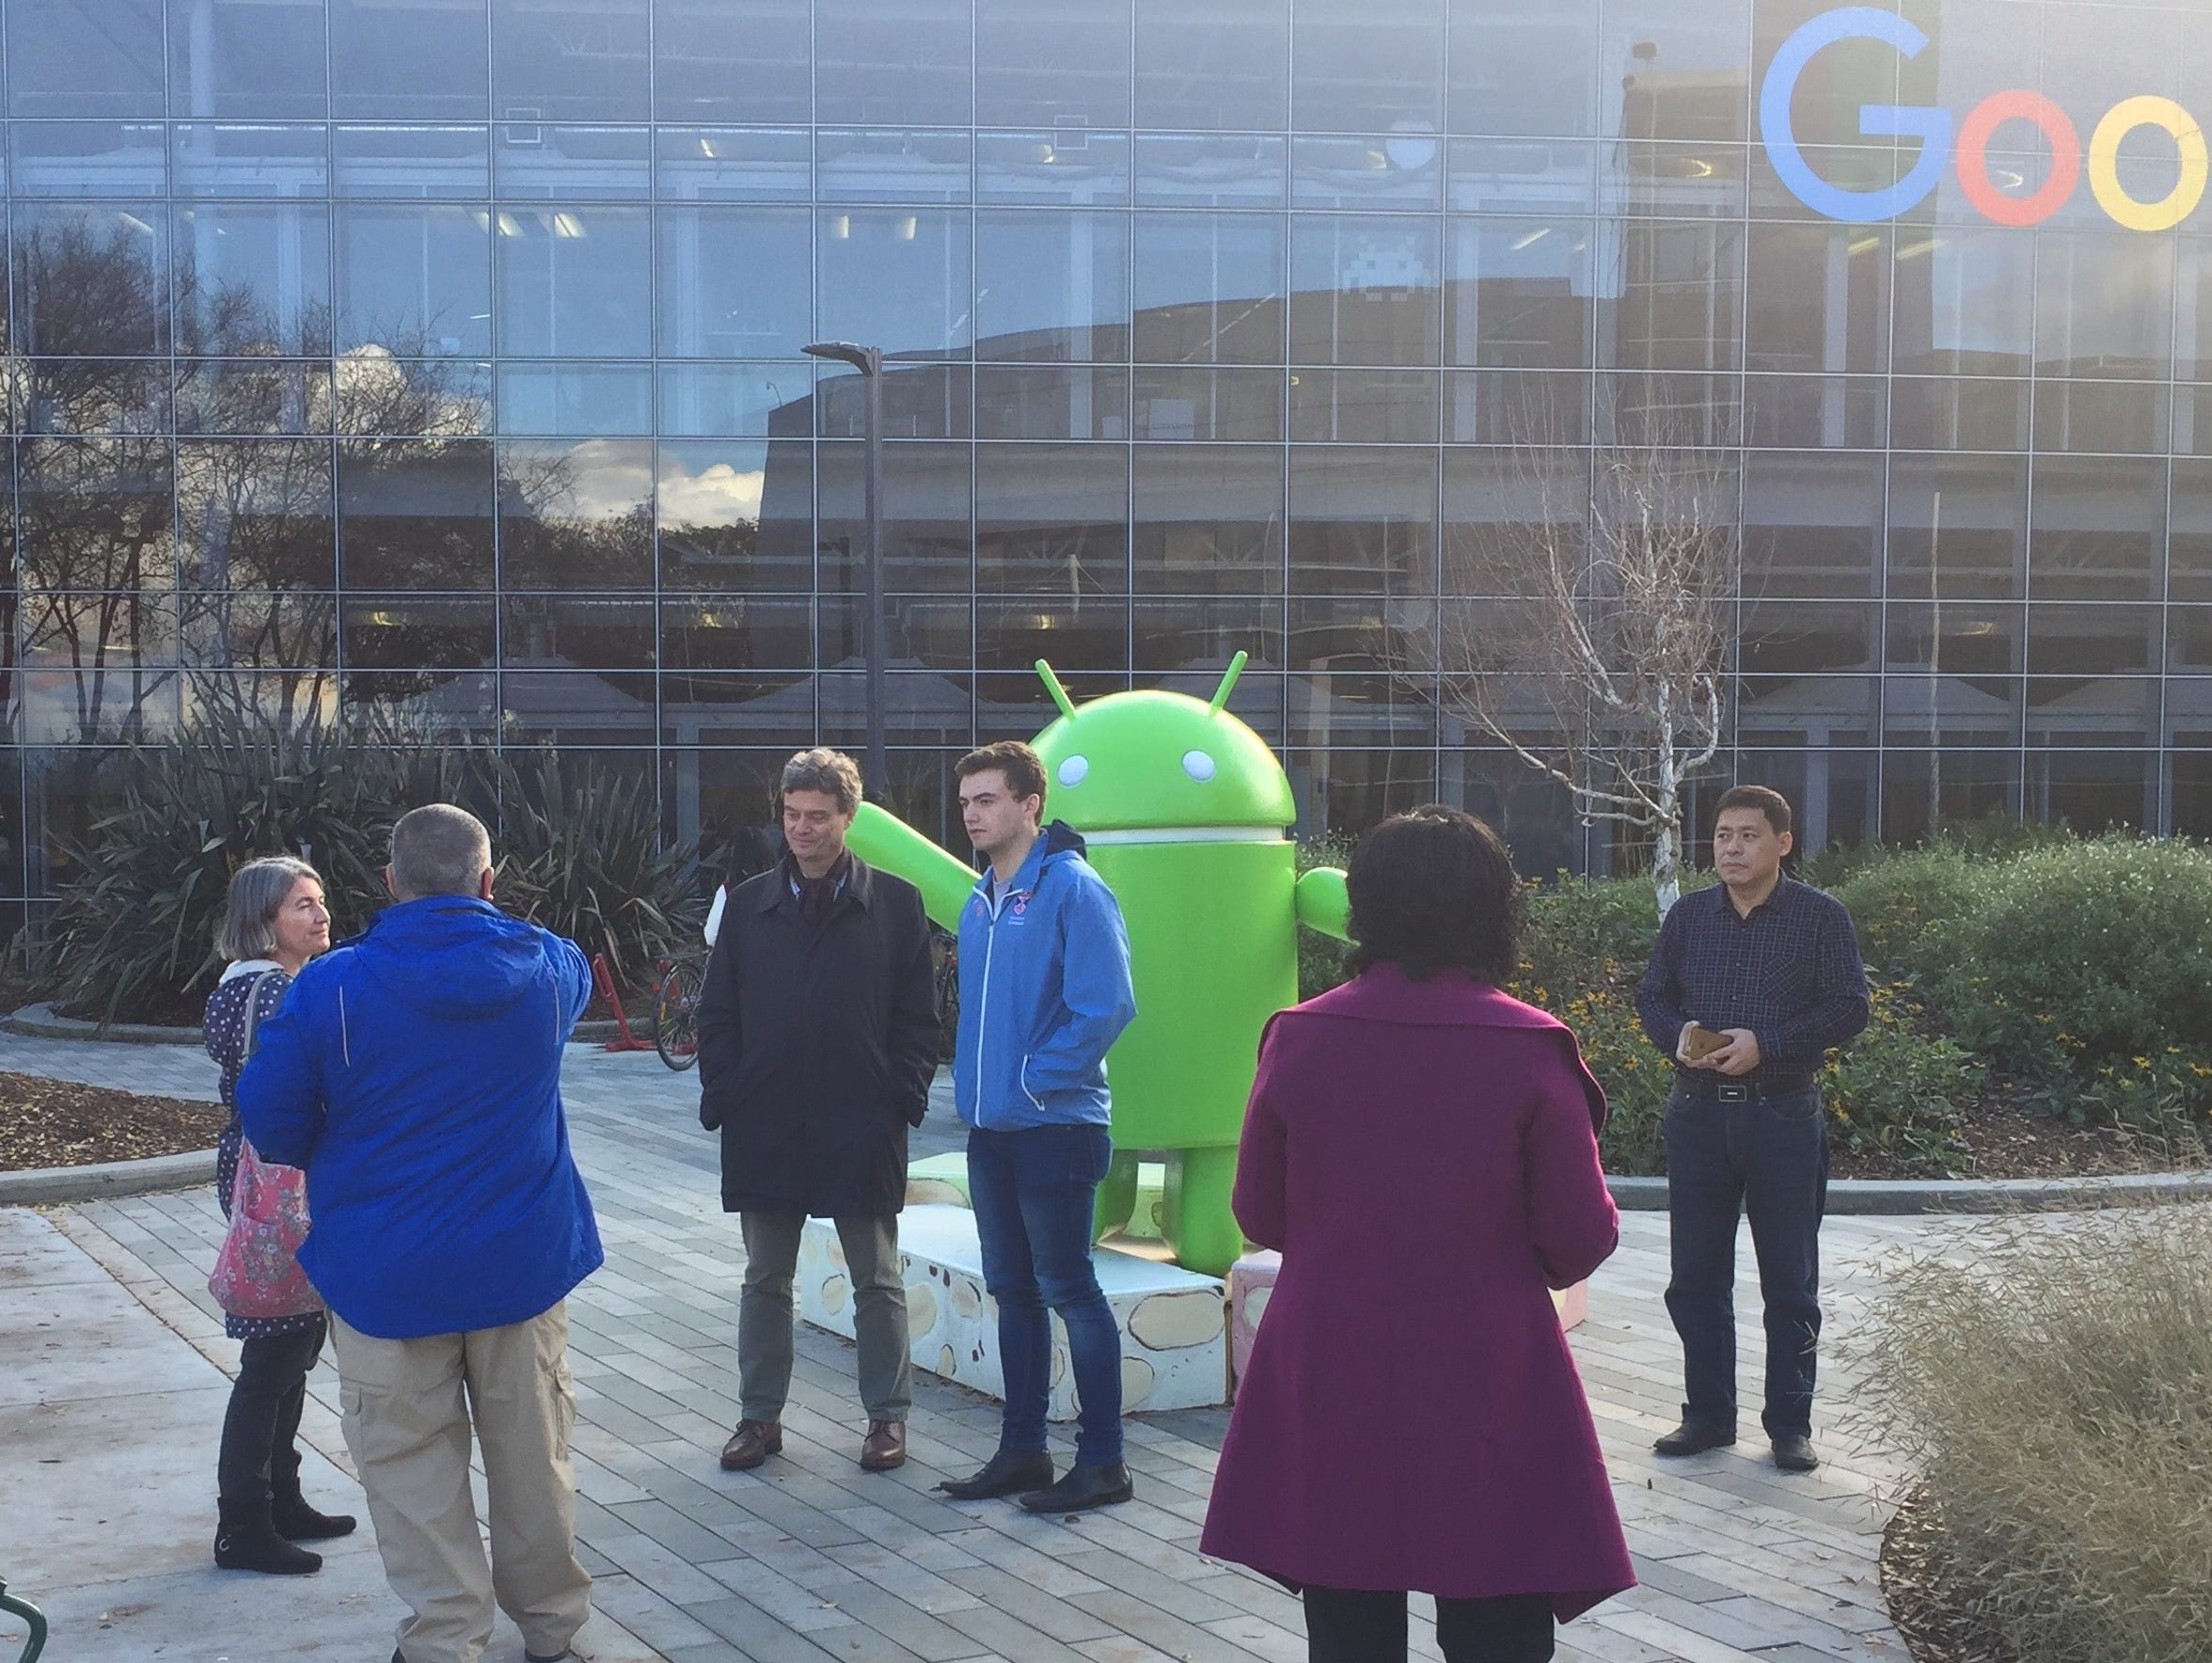 Google's android is a preferred place for photographs.